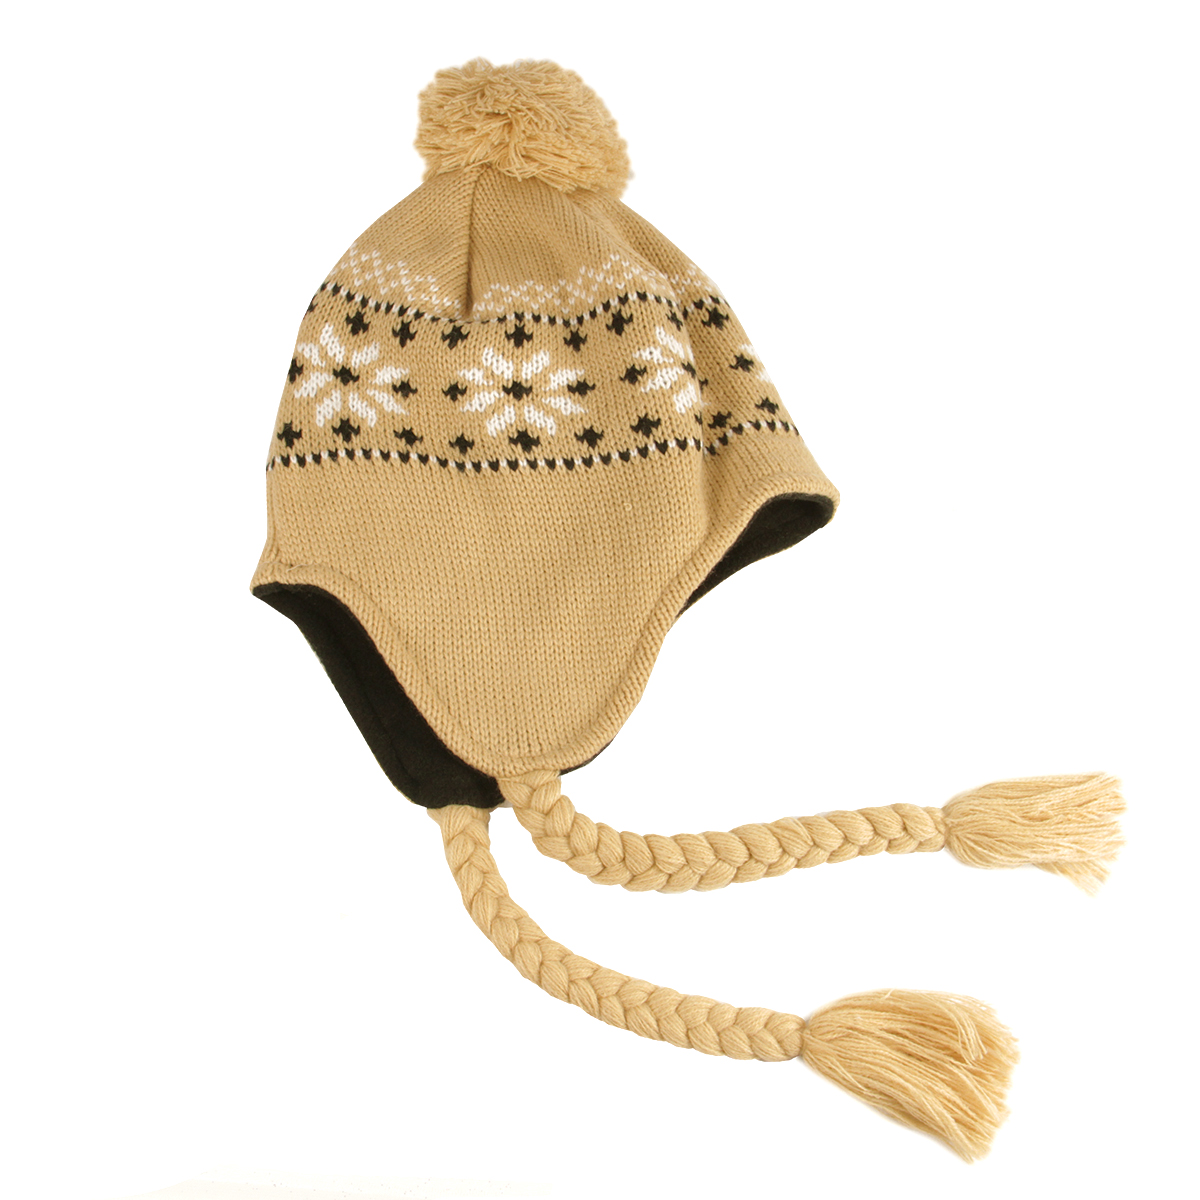 Unisex Light Khaki Jacquard Knit Winter Hat with Ear Flaps - One Size